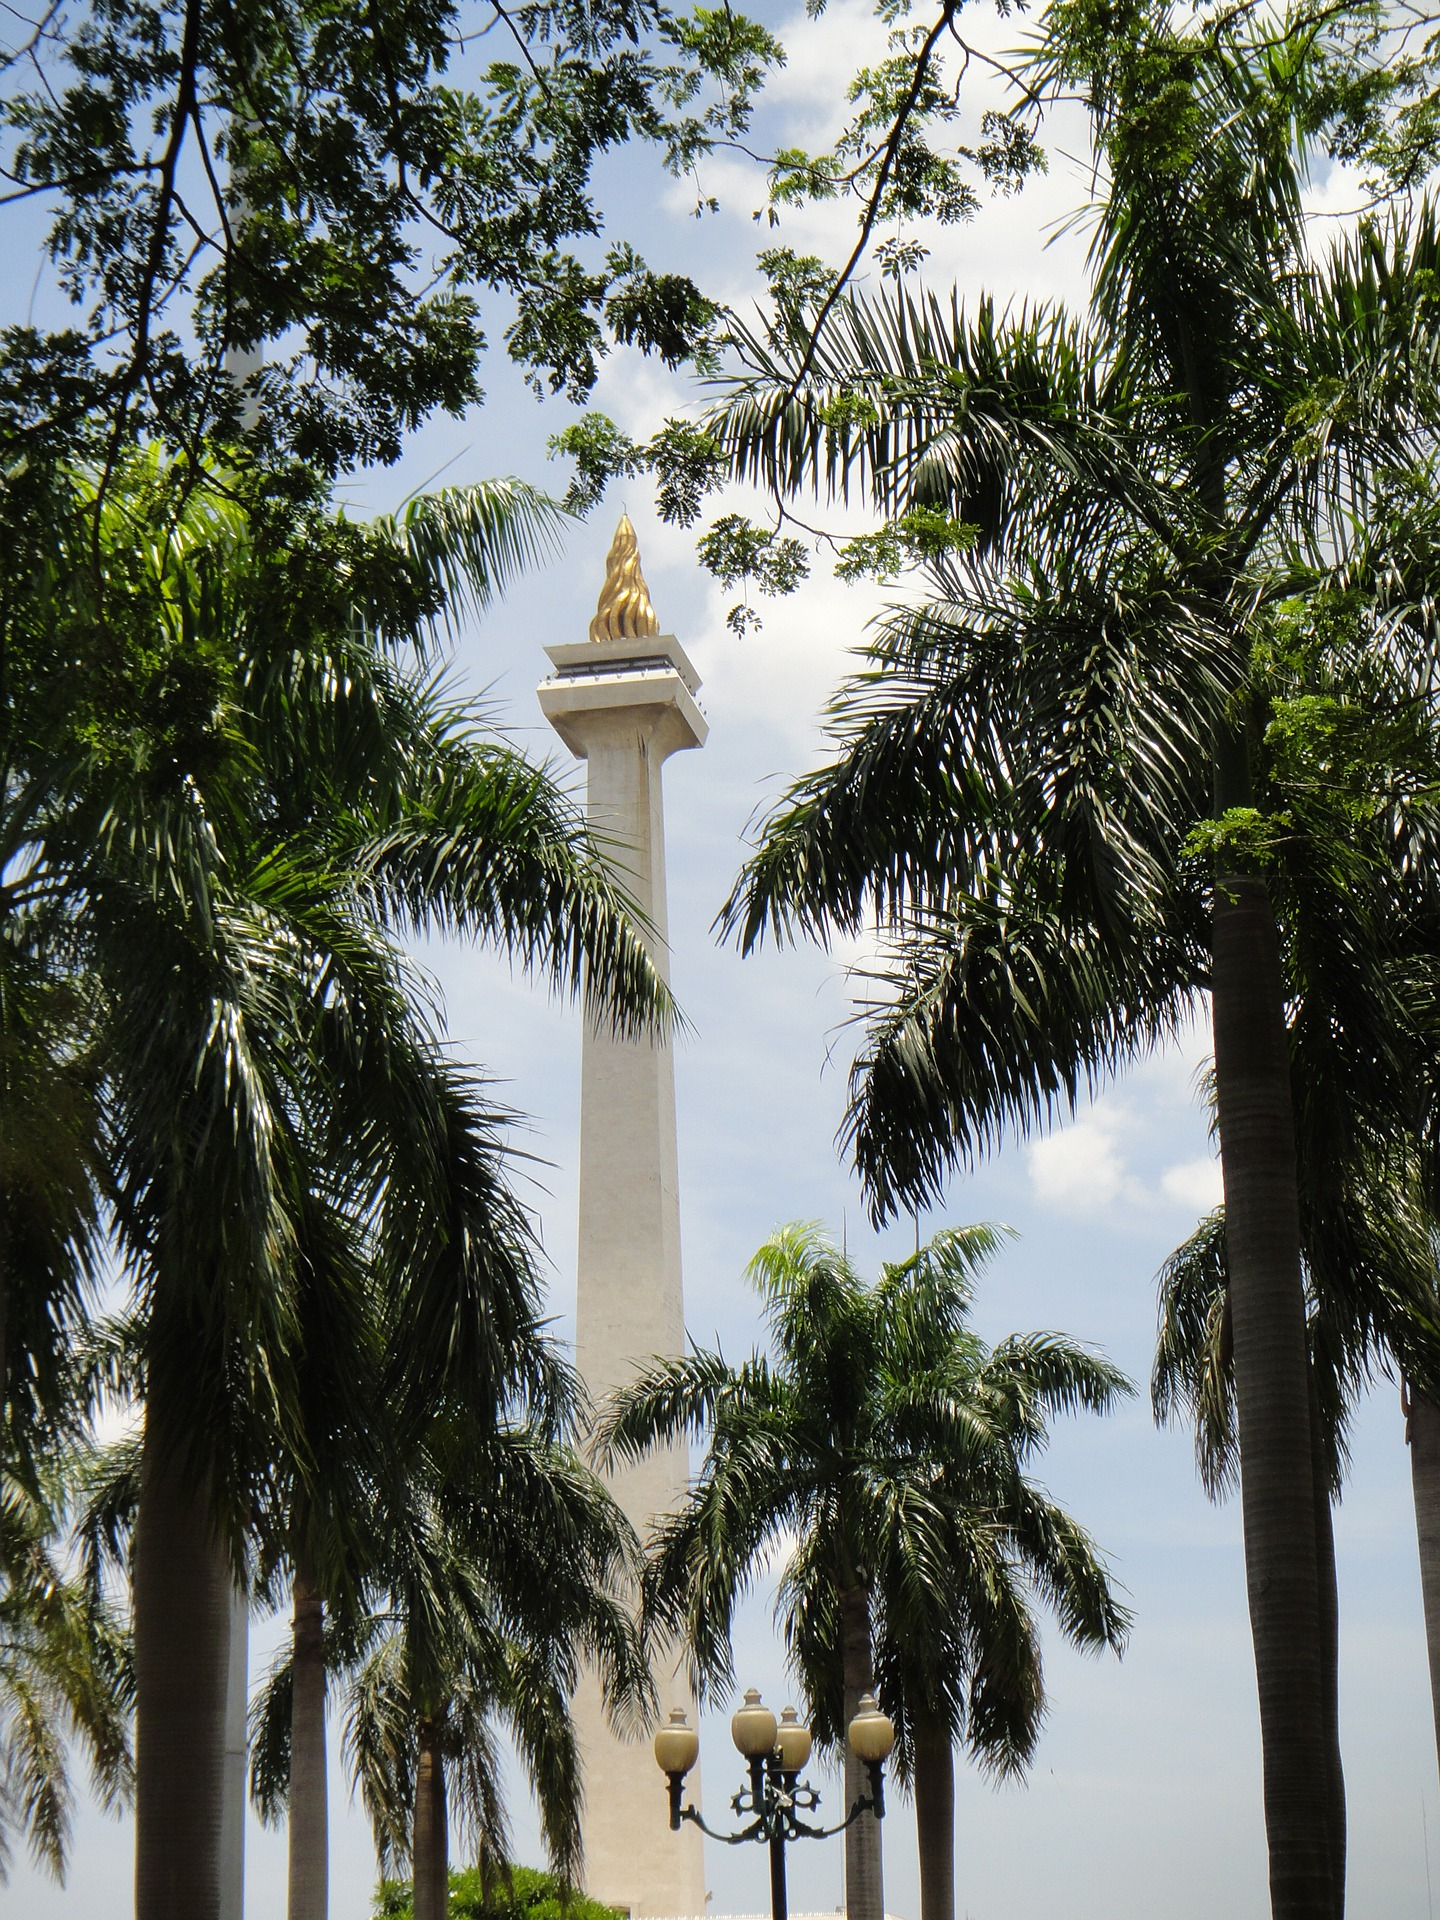 17 Things to do in Jakarta for an Unforgettable Holiday